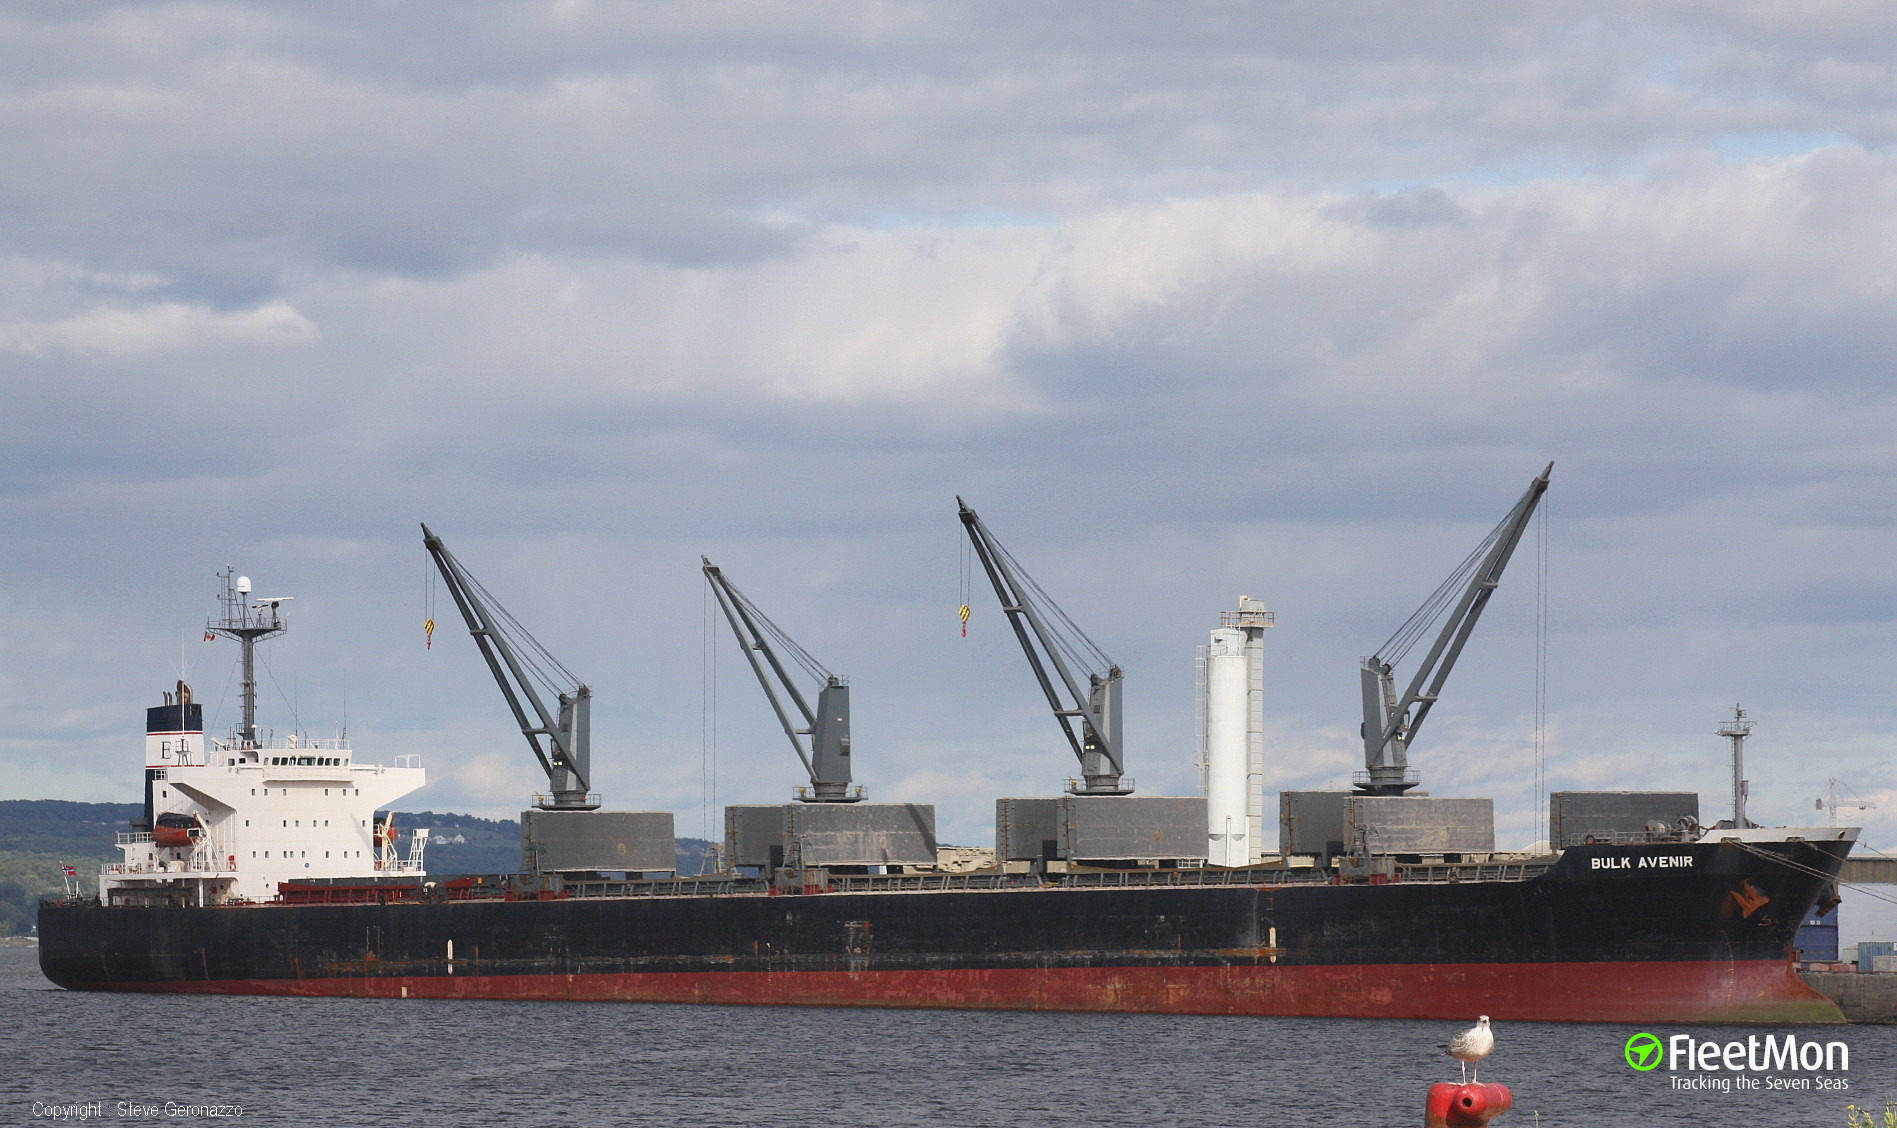 Bulk carrier ALEX A broke optic cable obeying Traffic Control commands